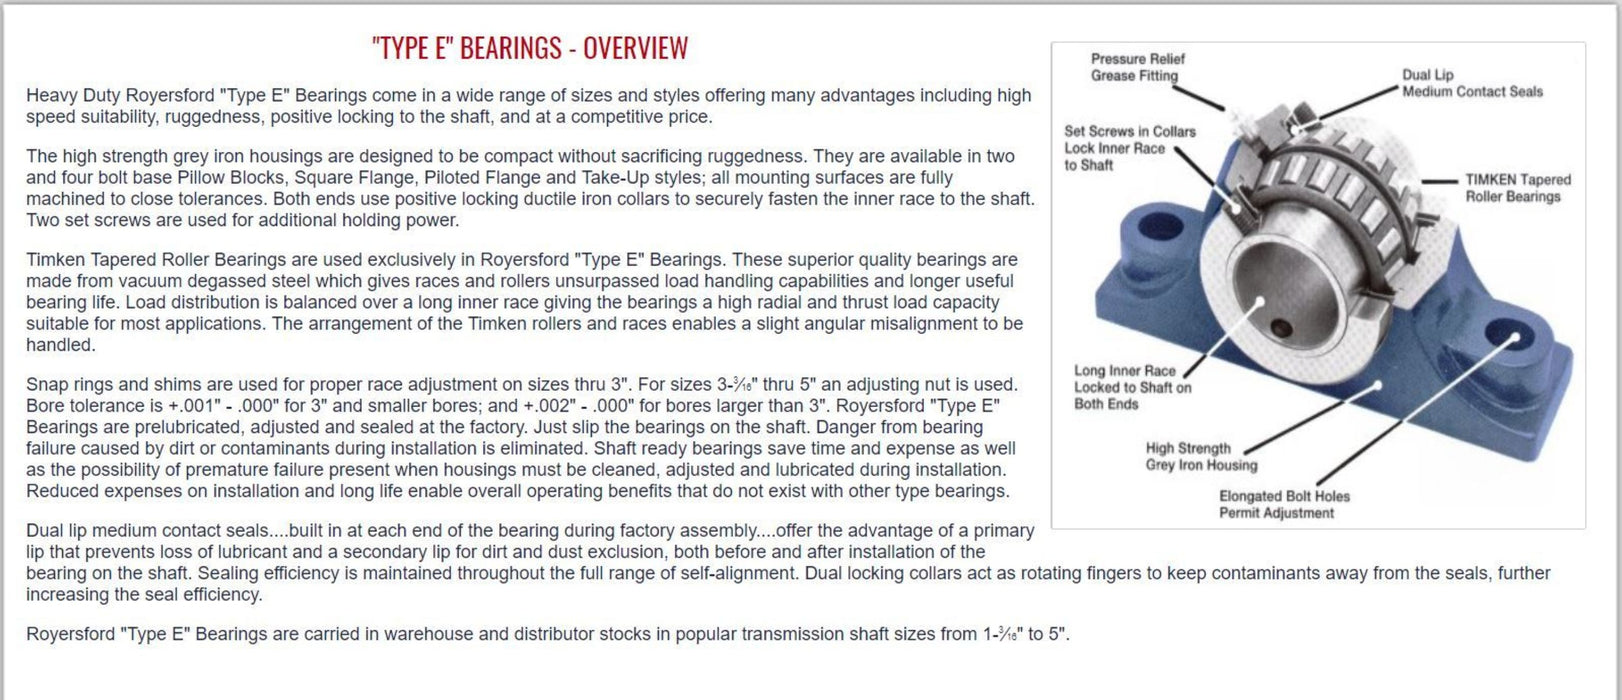 20-02-211, ROYERSFORD TYPE E Pillow Block Bearing, 2-11/16 with Timken Tapered Roller Bearings